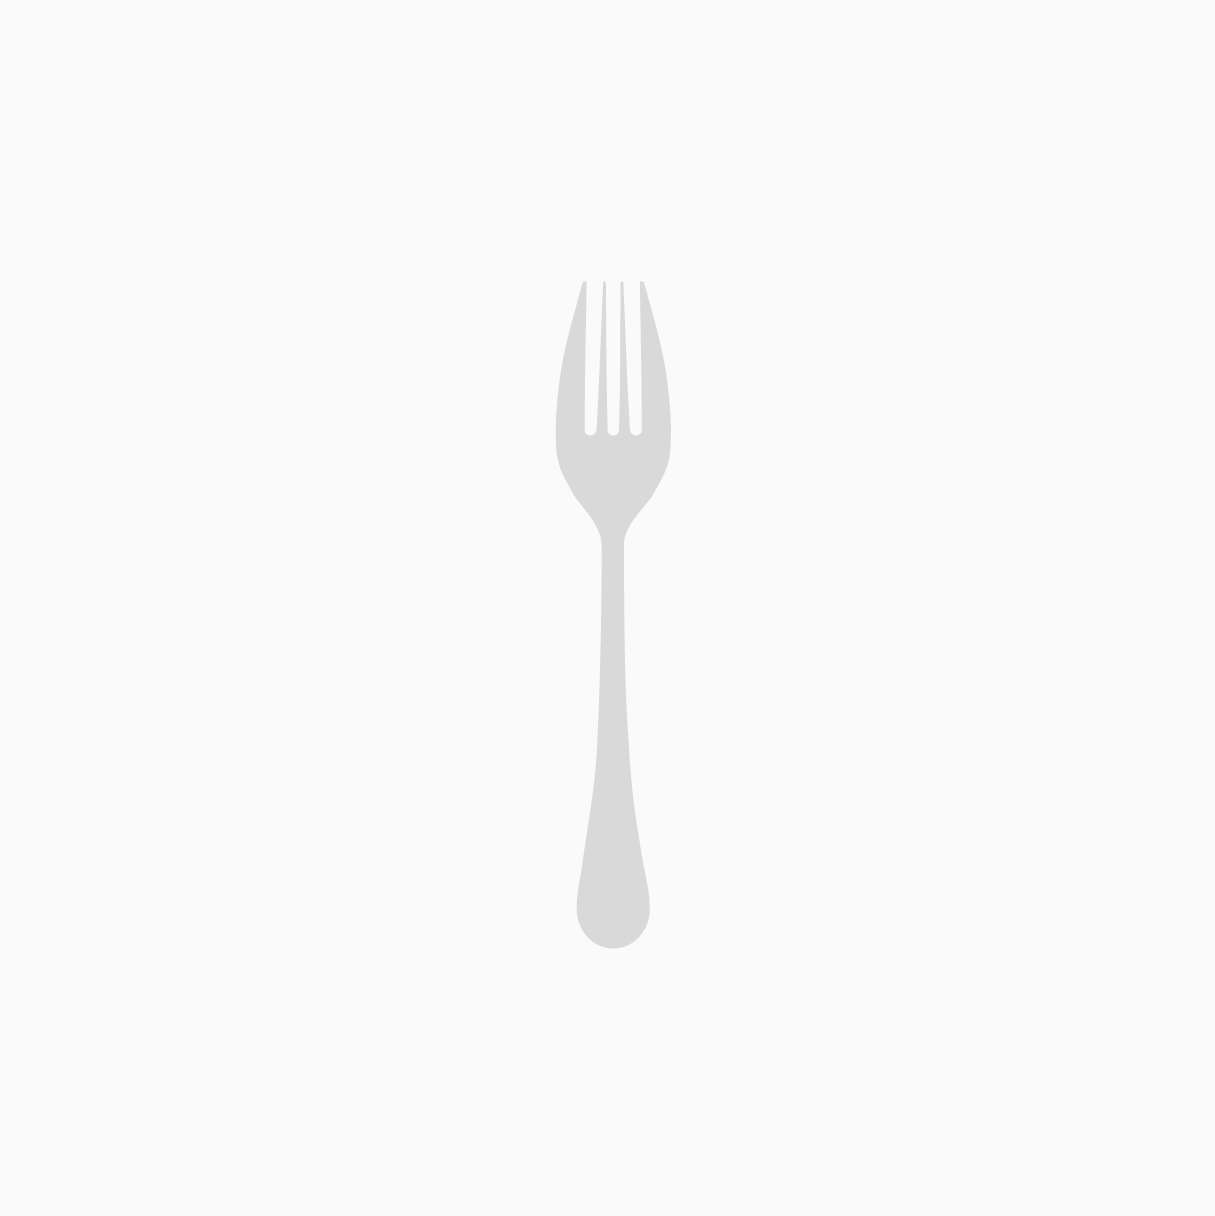 Cake Fork (4 prongs)